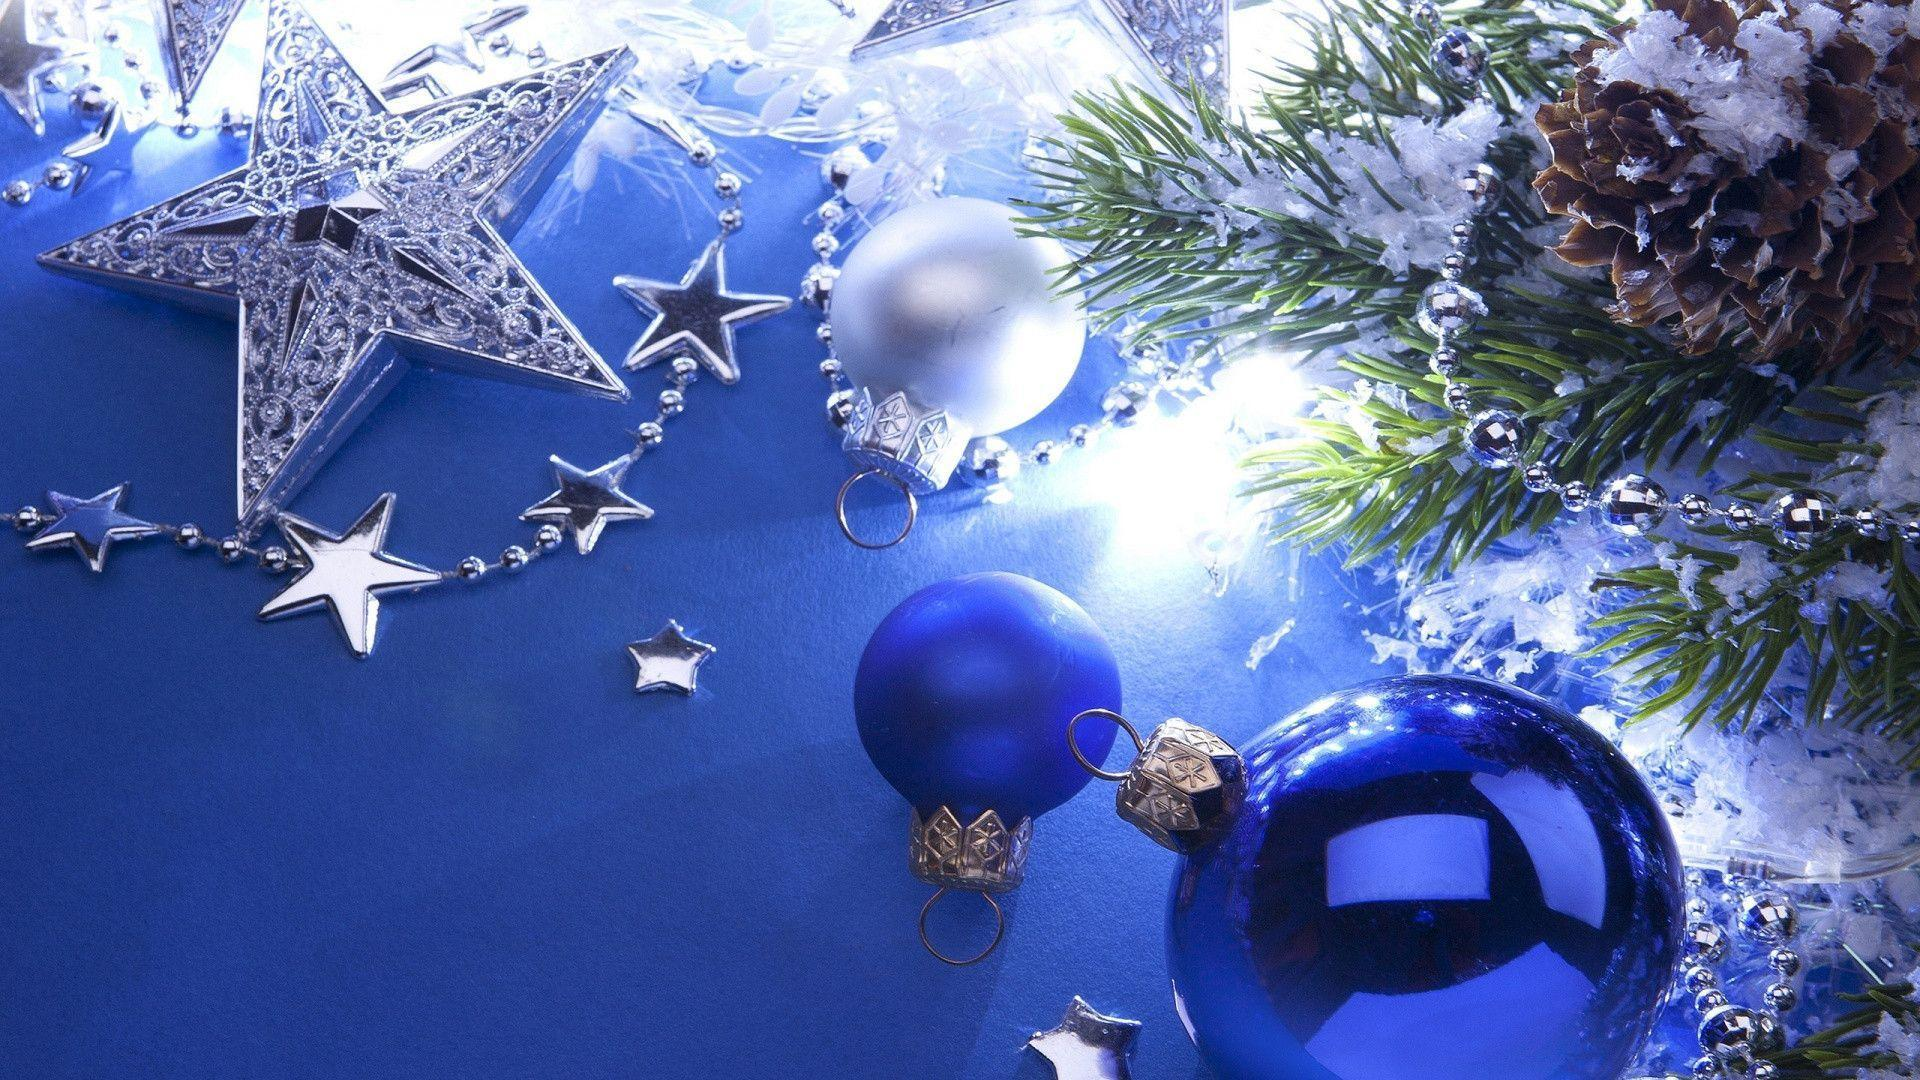 1920x1080 Christmas Wallpapers - Wallpaper Cave